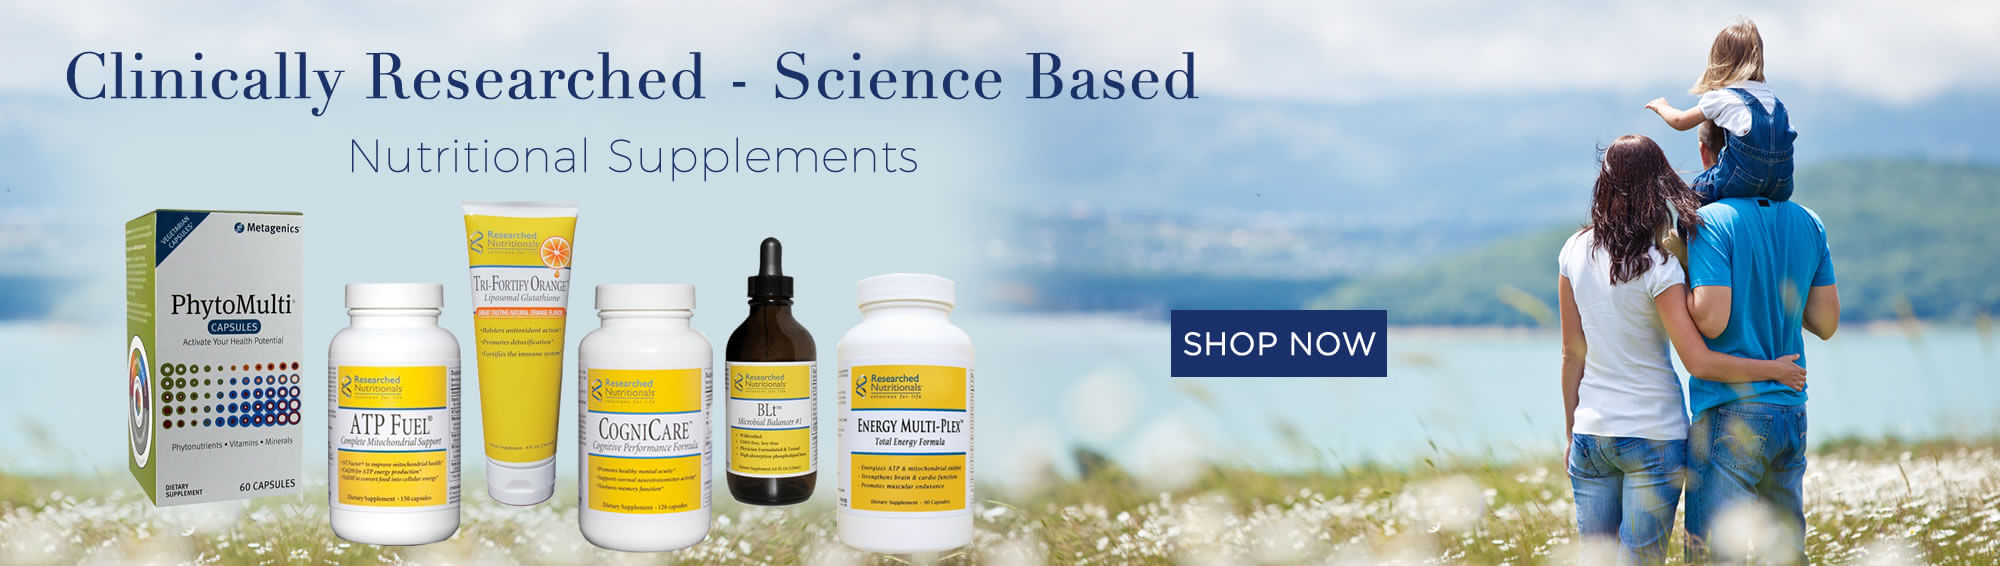 Clinically Researched - Science Based